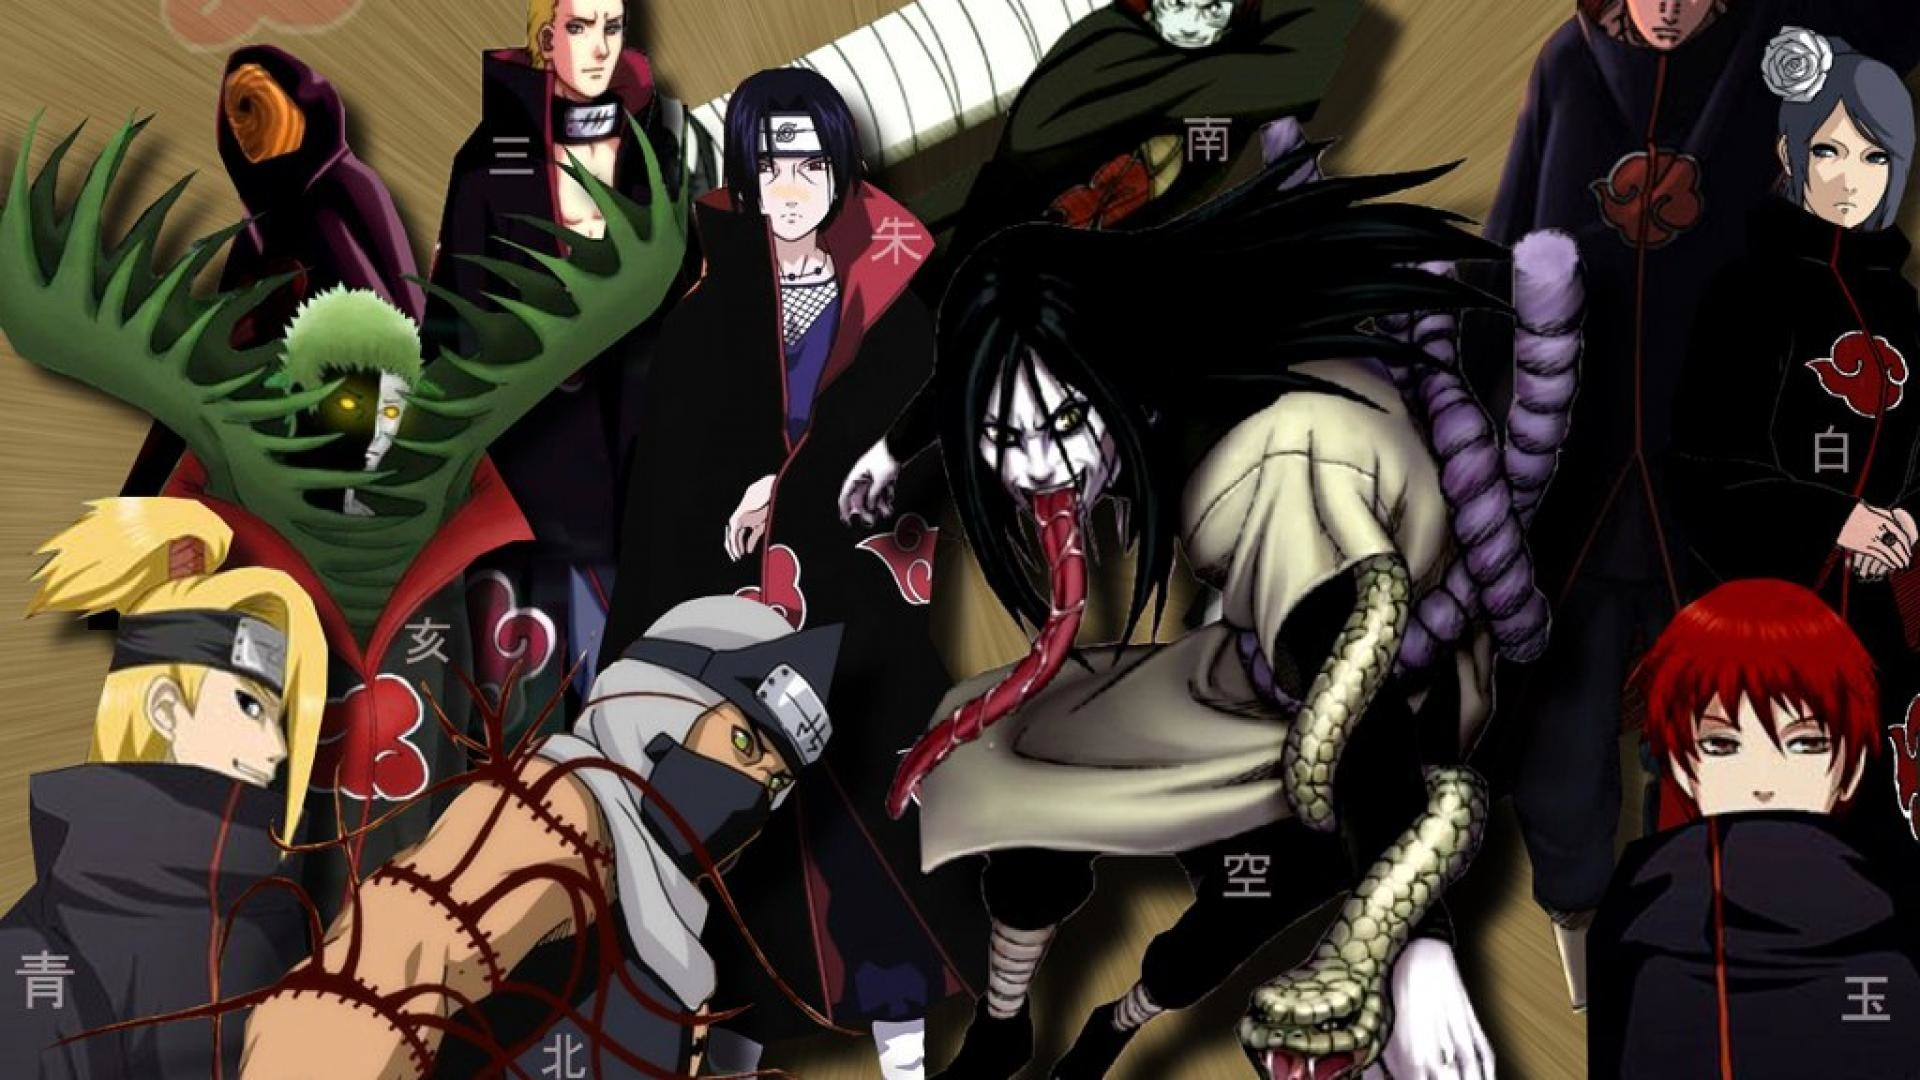 1112368 full size naruto shippuden wallpaper akatsuki 1920x1080 mac